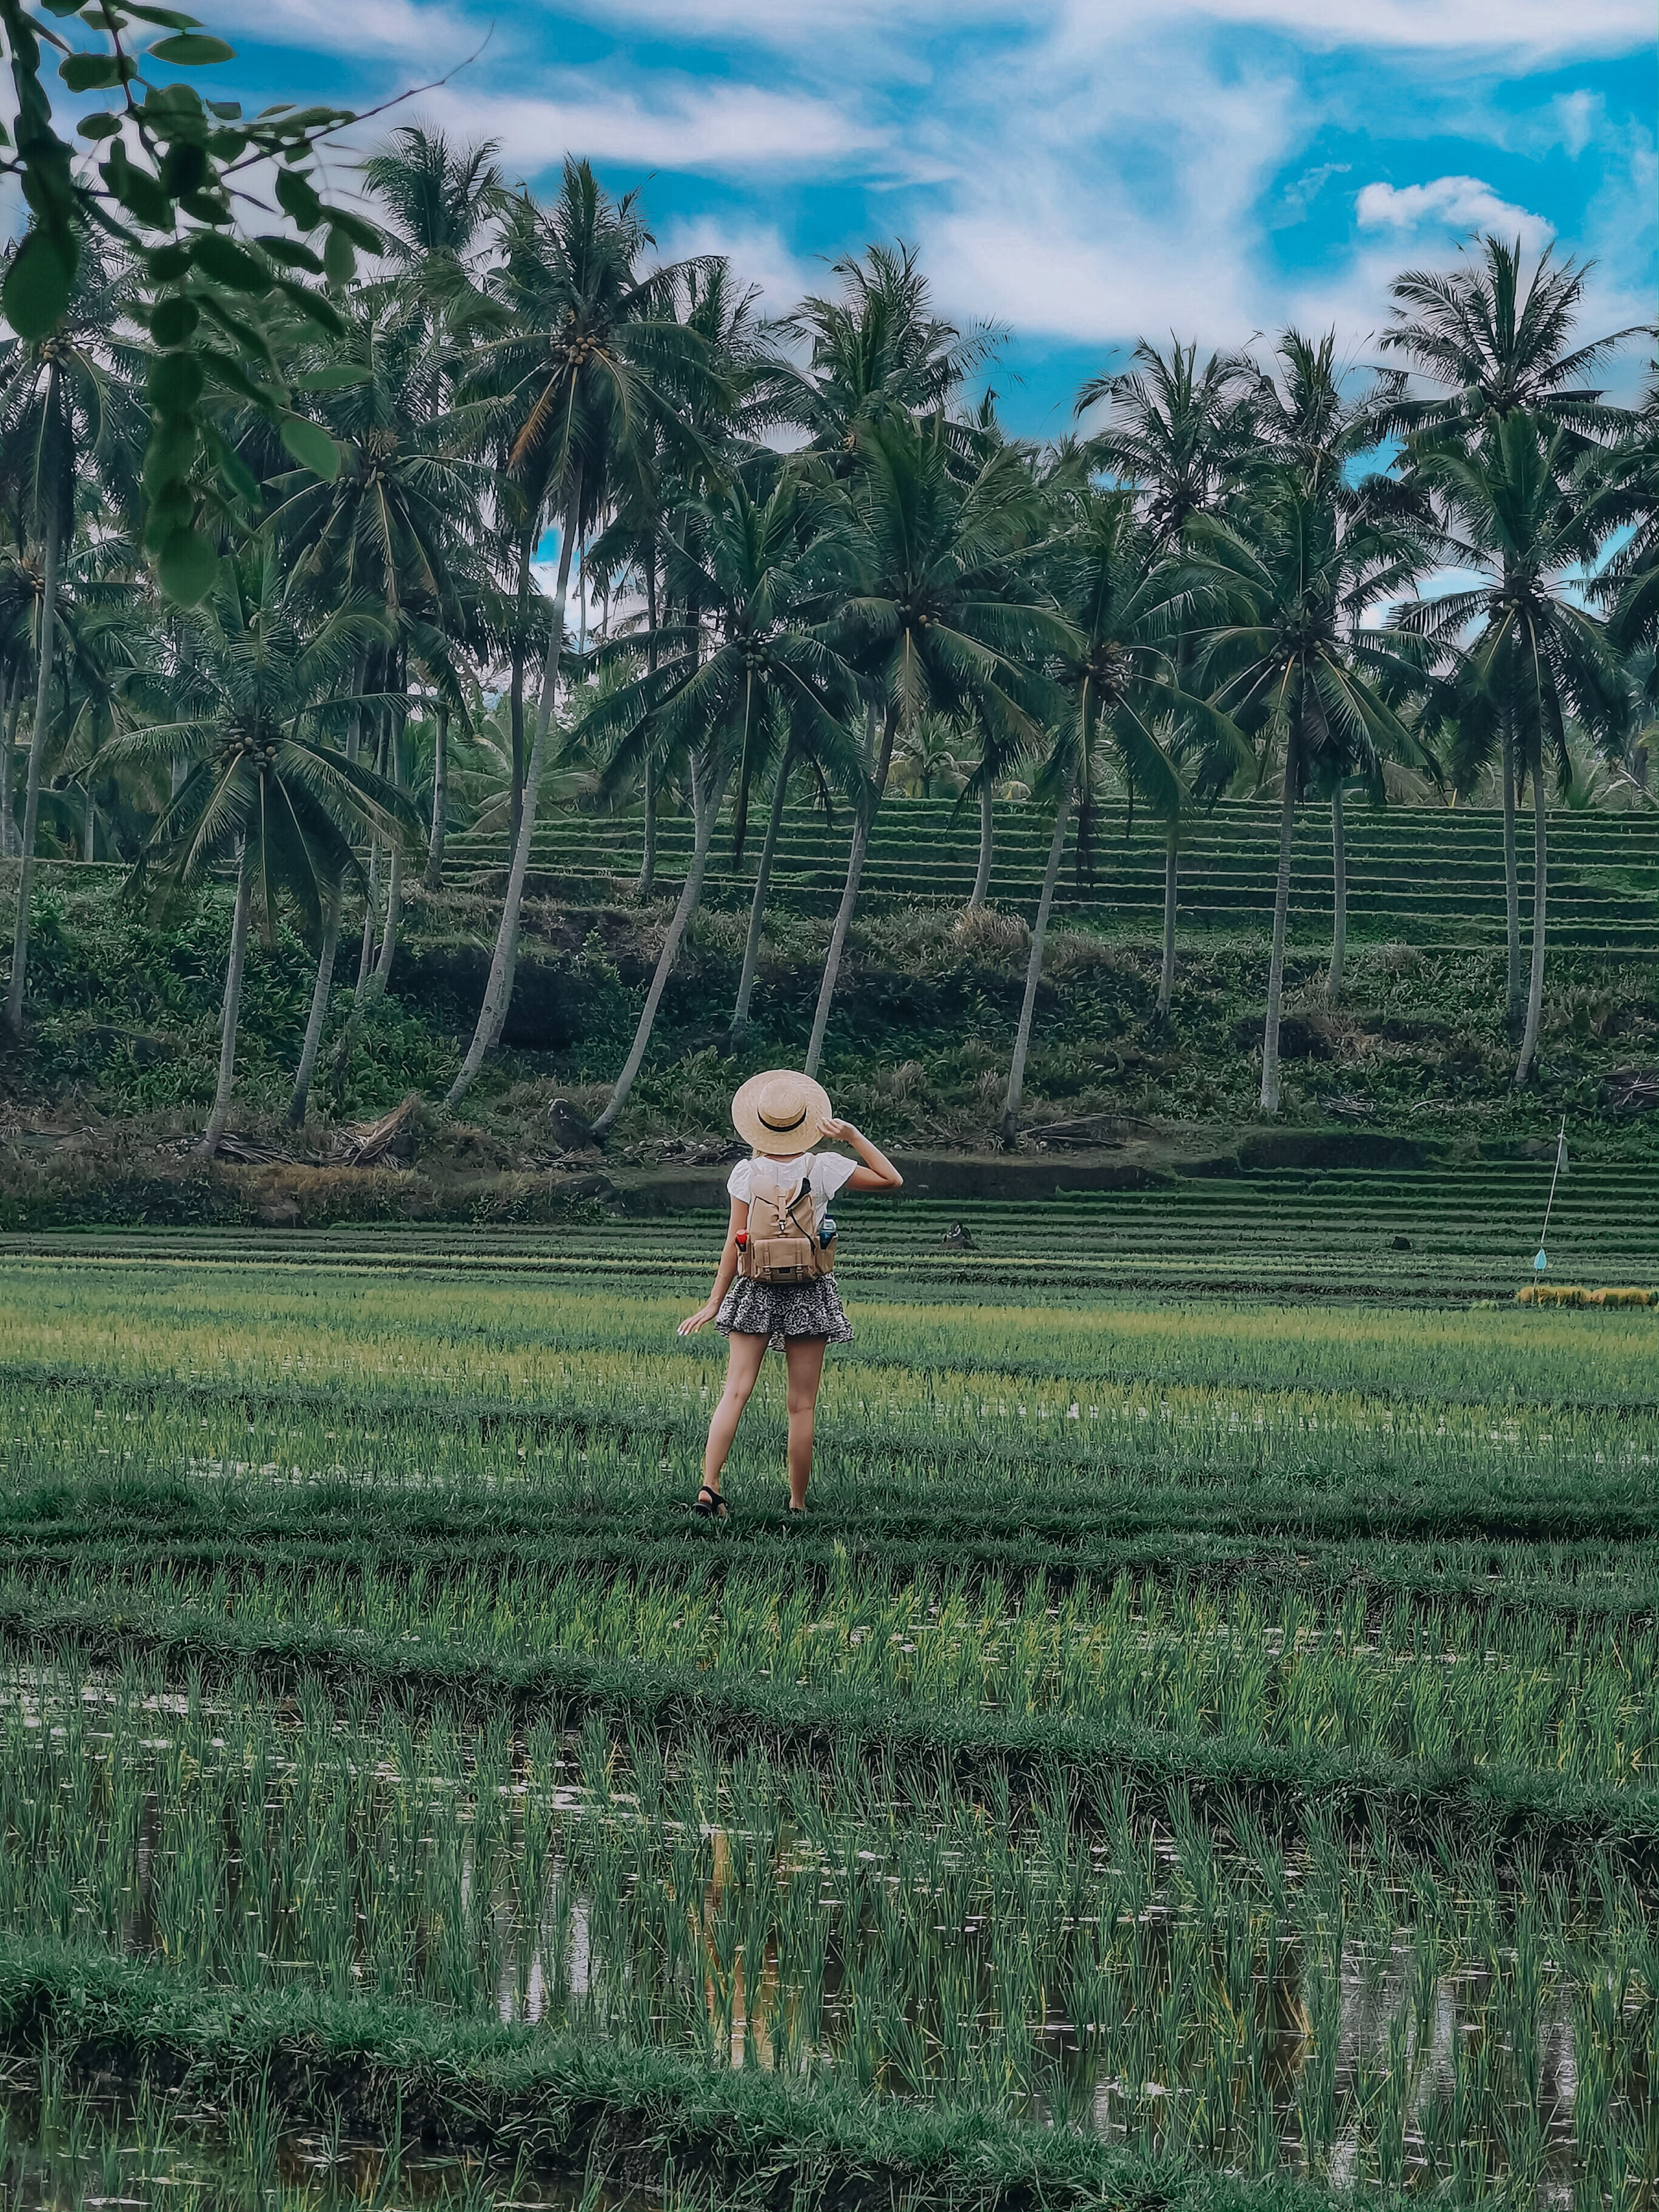 Daily Adventures in Ubud